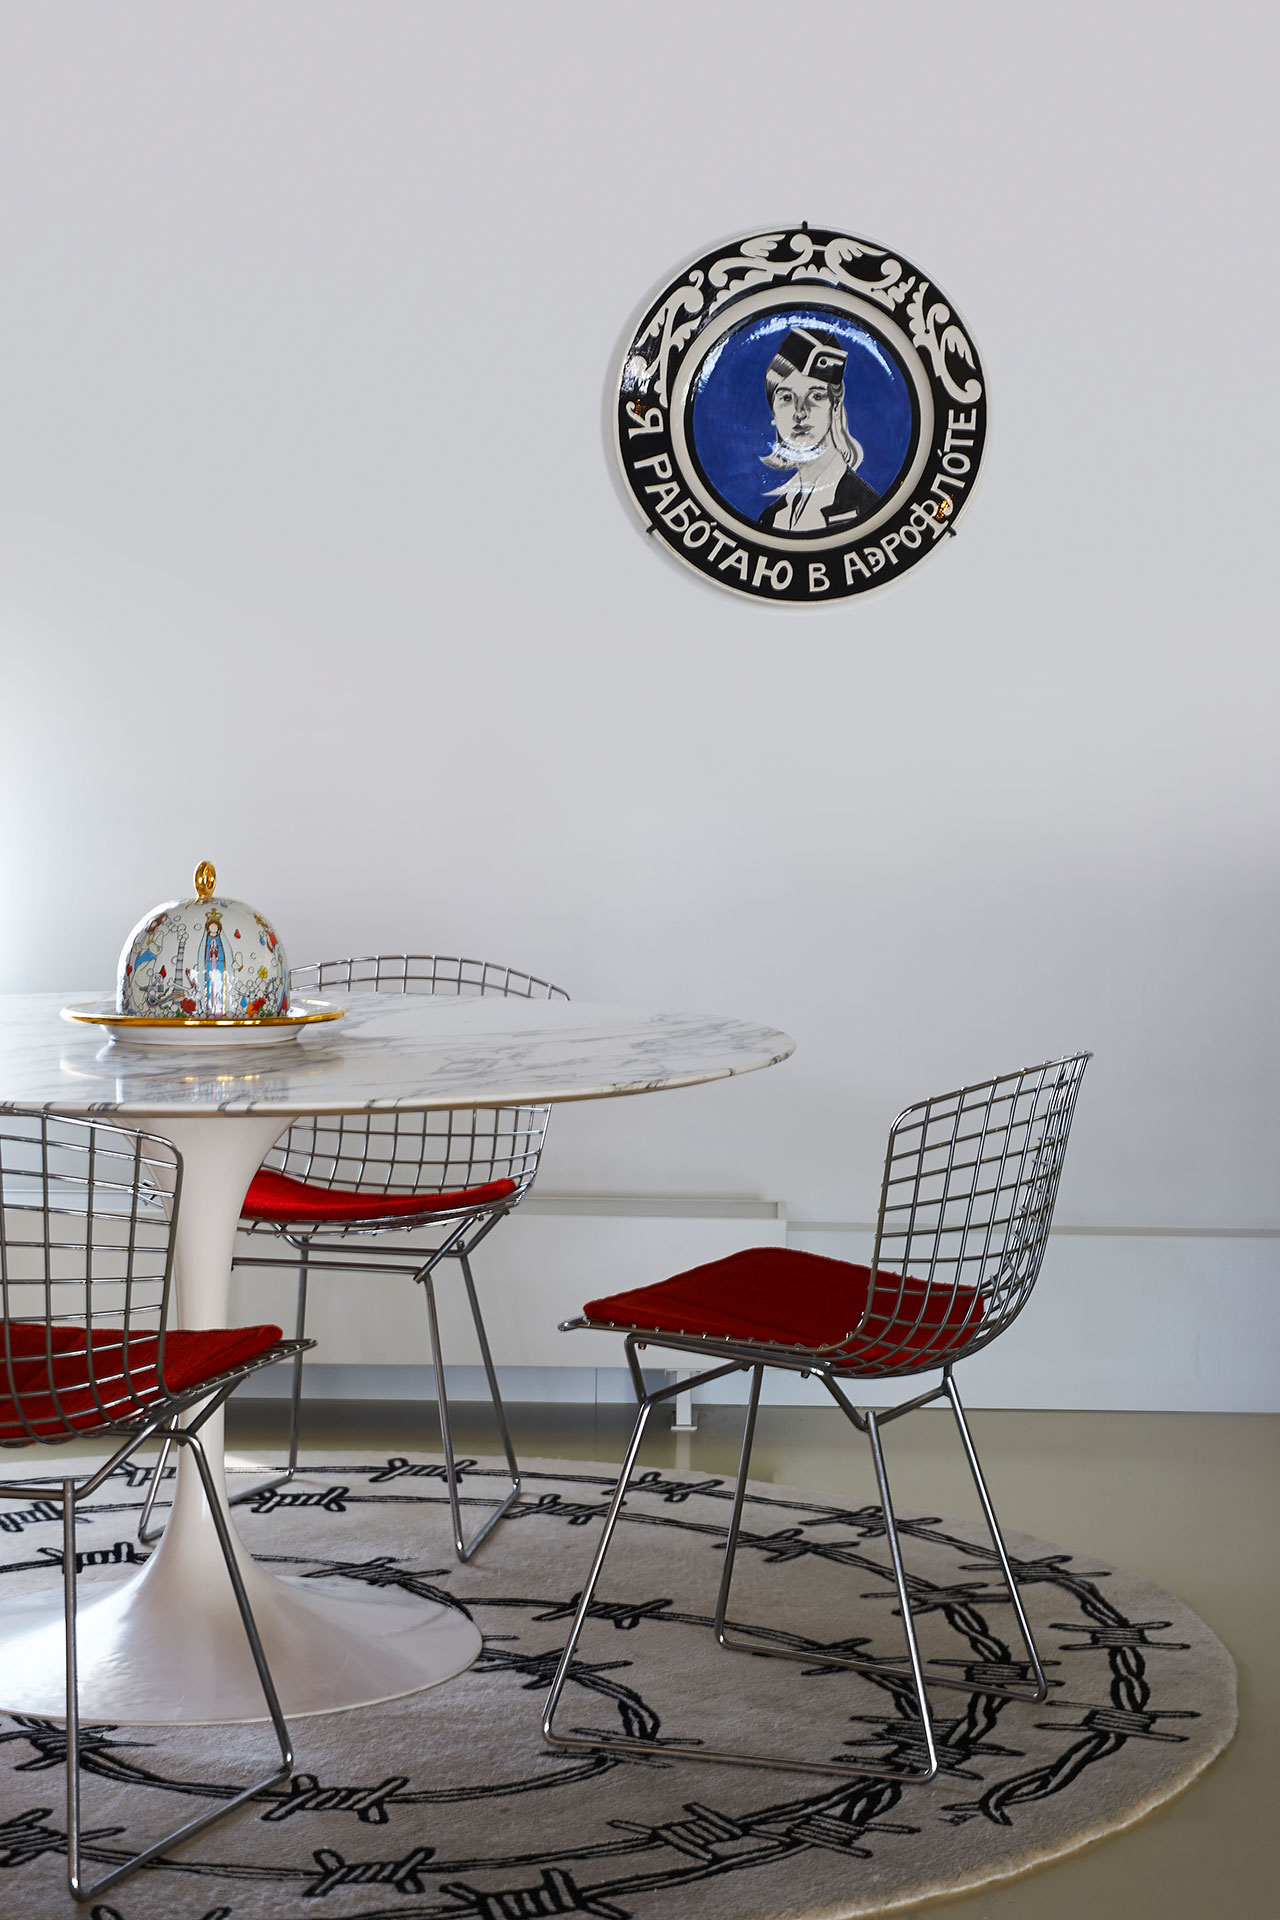 Kitchen.Tulip Table, Eero Saarinen for Knoll.Wire Chair, Harry Bertoia for Knoll.Dome on Plate from The Last Supper, Royal Tichelaar Makkum by Studio Job.Barb Wire, Studio Job for Nodus.Plate, Ravage.Photo by Dennis Brandsma.